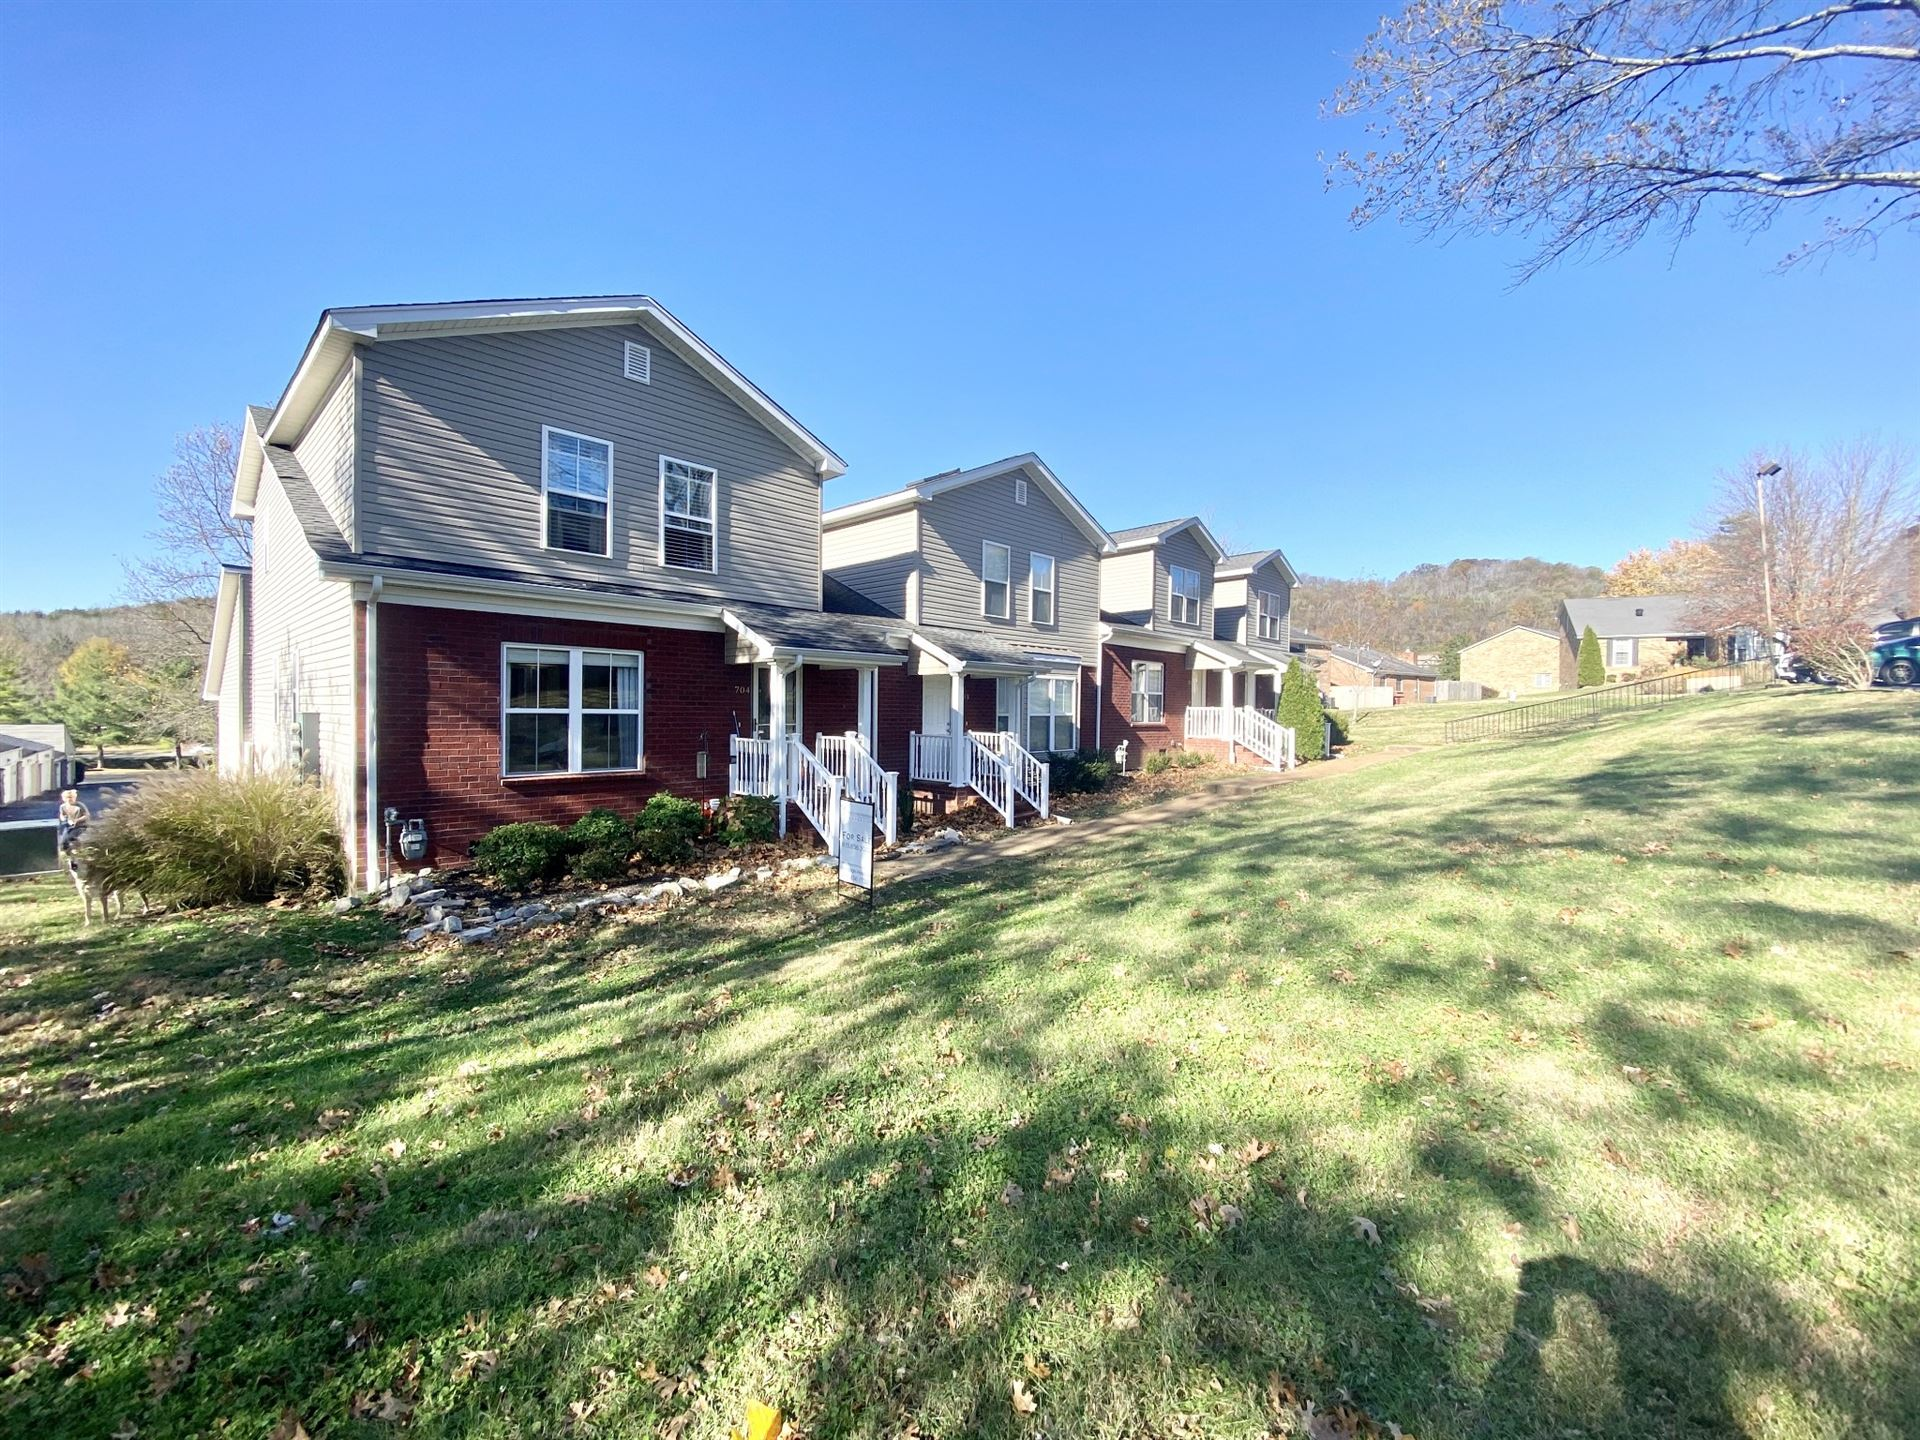 Photo of 704 Vineland Ct, Brentwood, TN 37027 (MLS # 2206841)